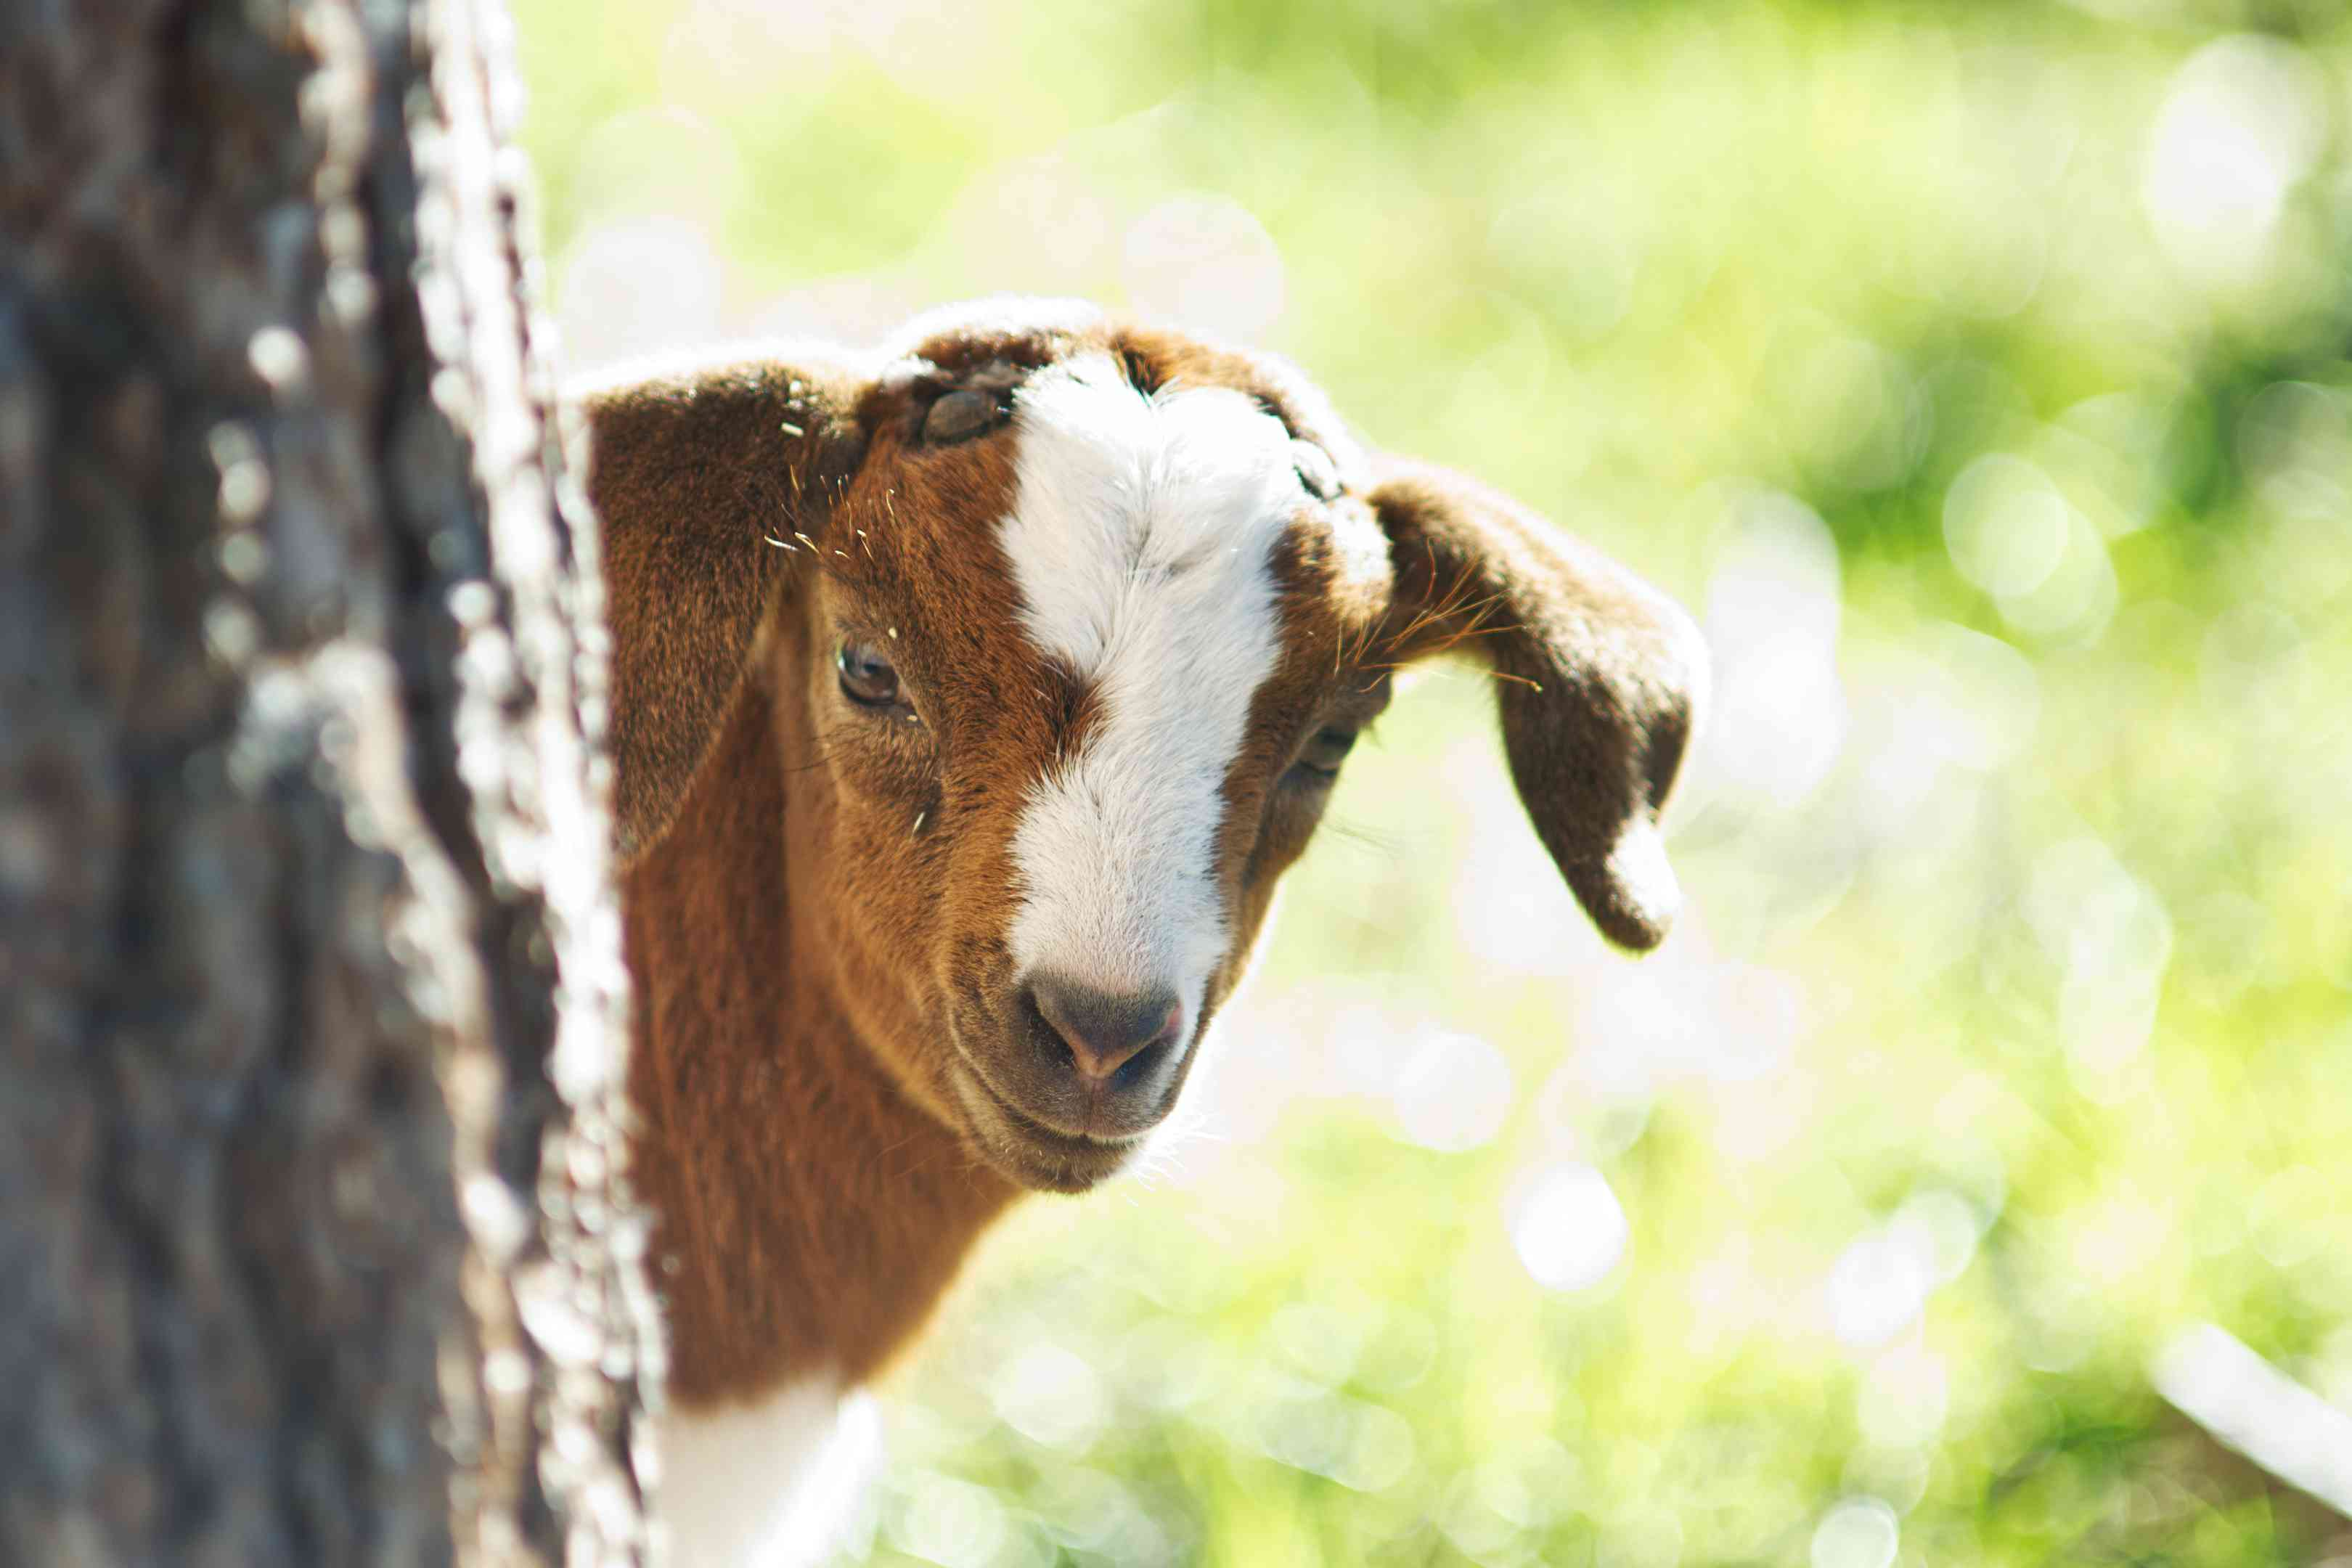 brown and white baby goat peeks head out from tree in bright green grass